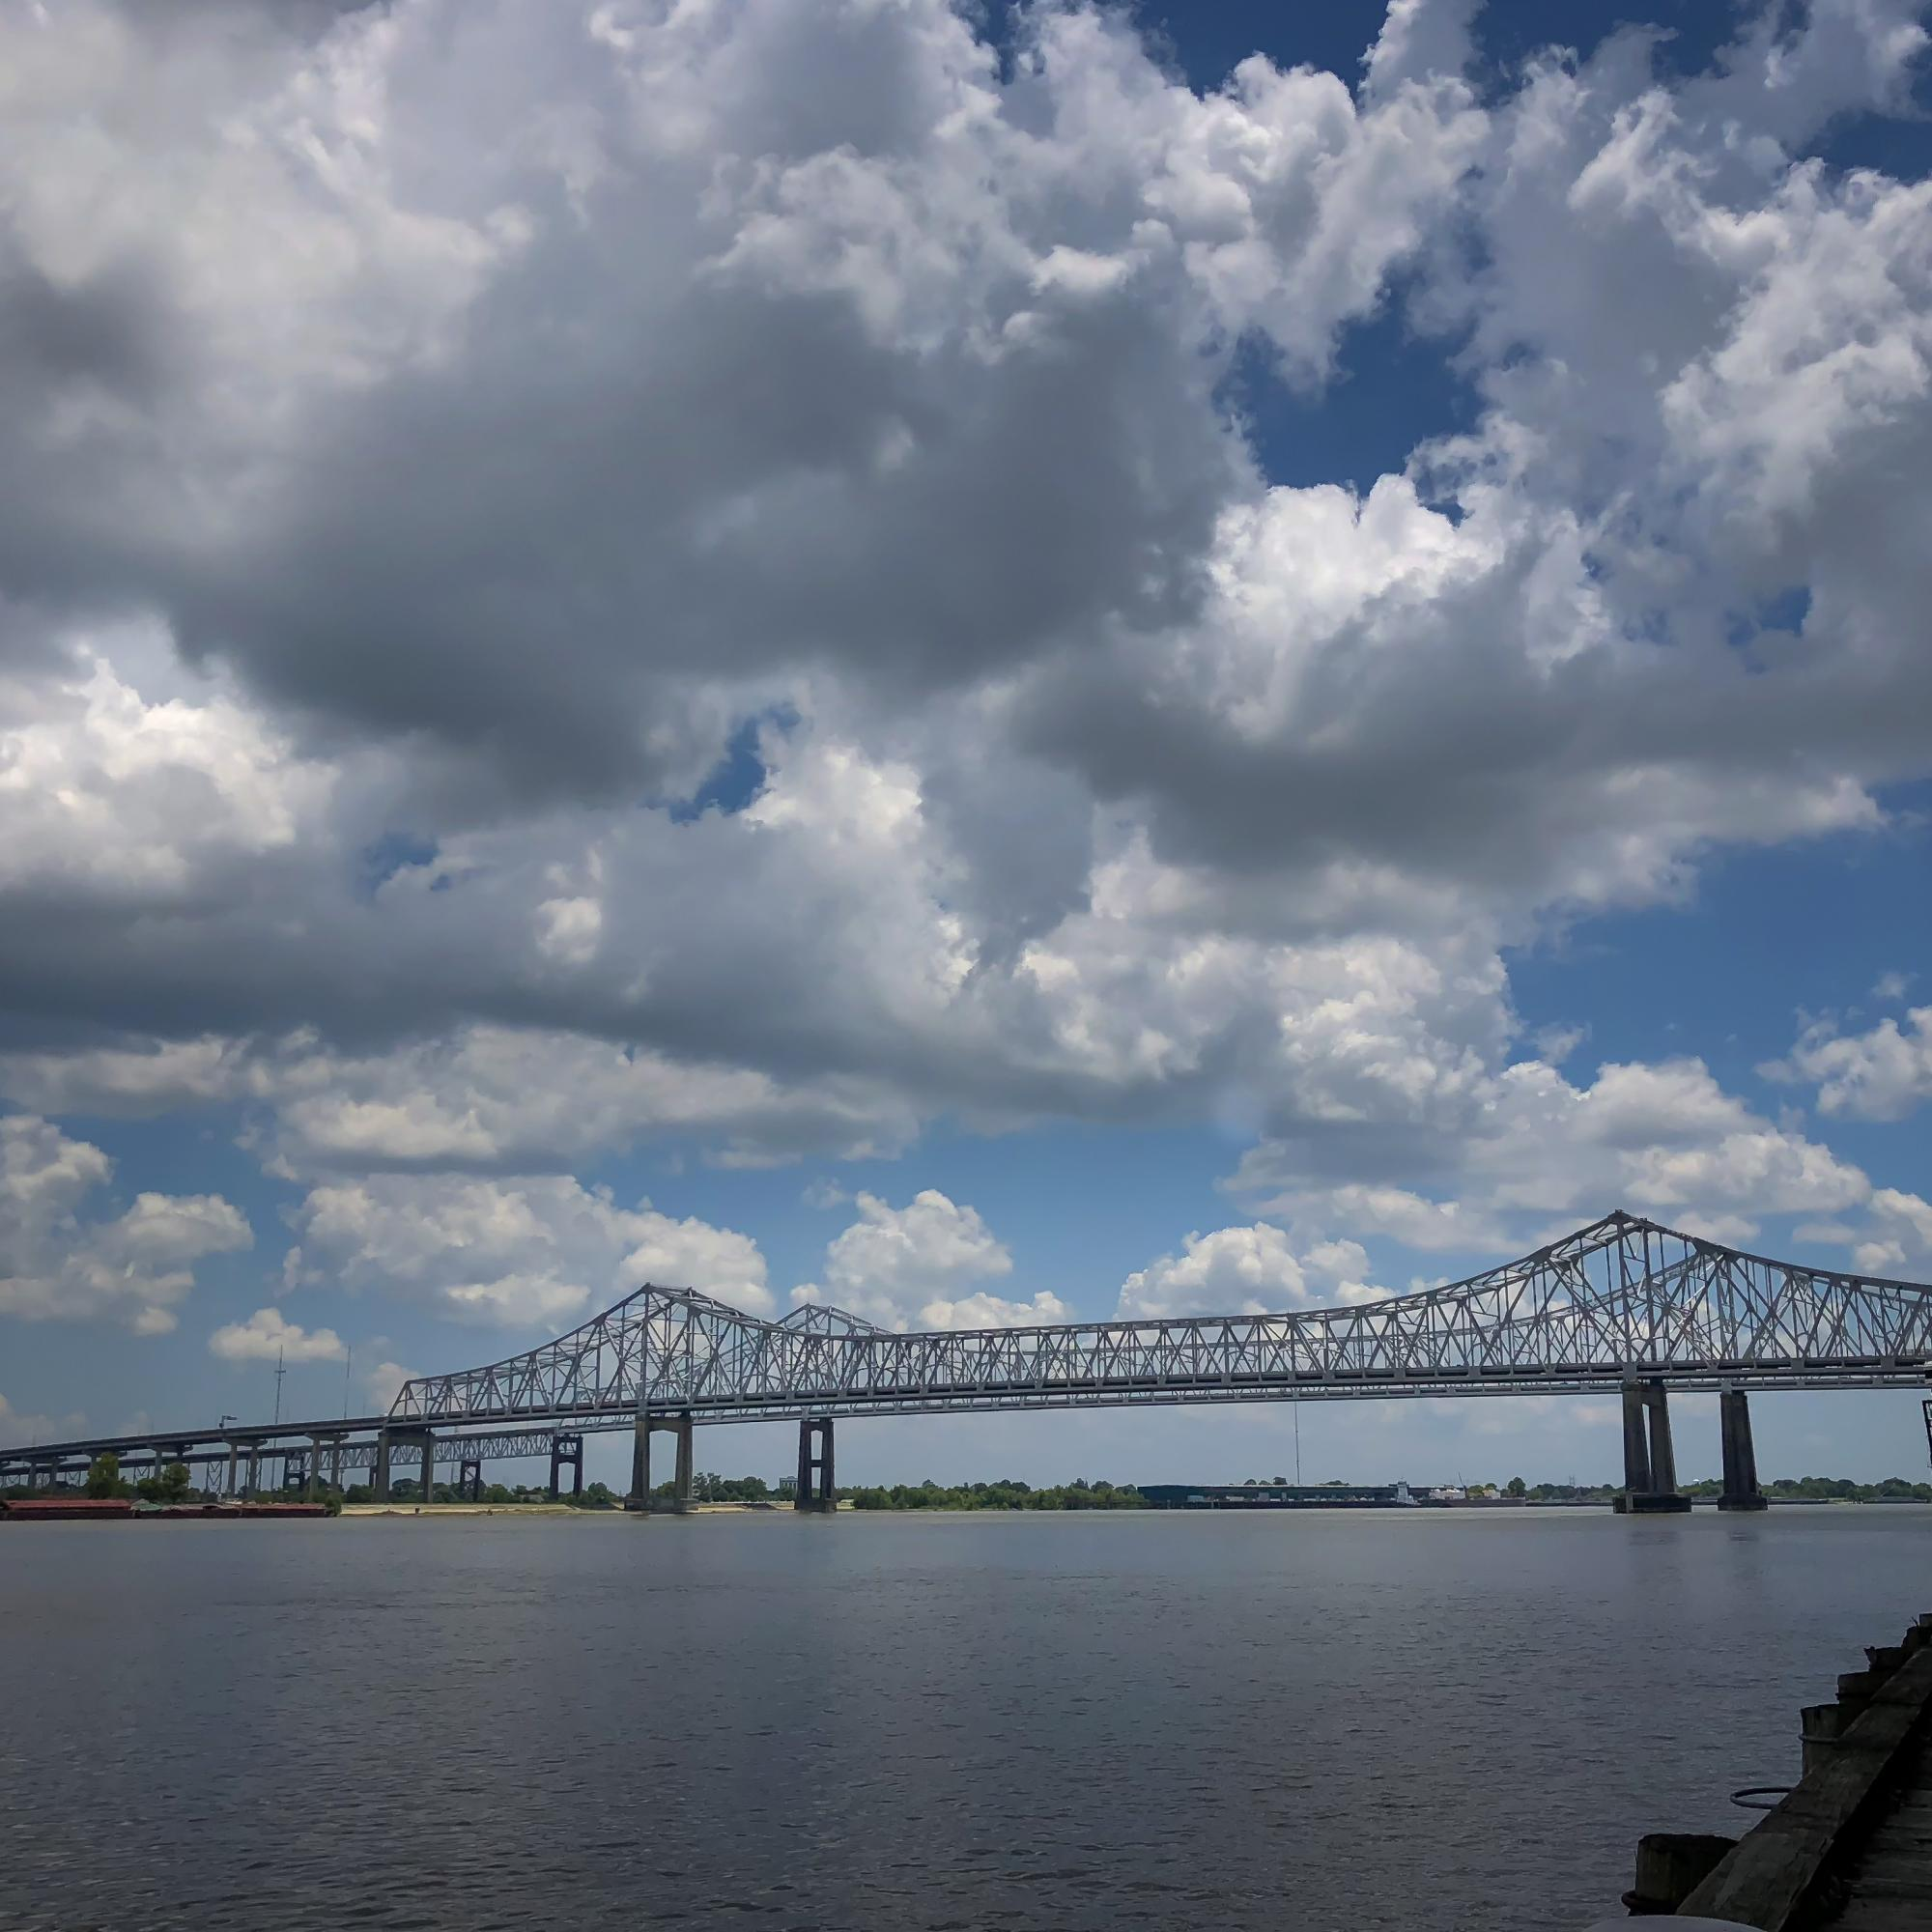 Algiers Bridge over the Mississippi River at New Orleans